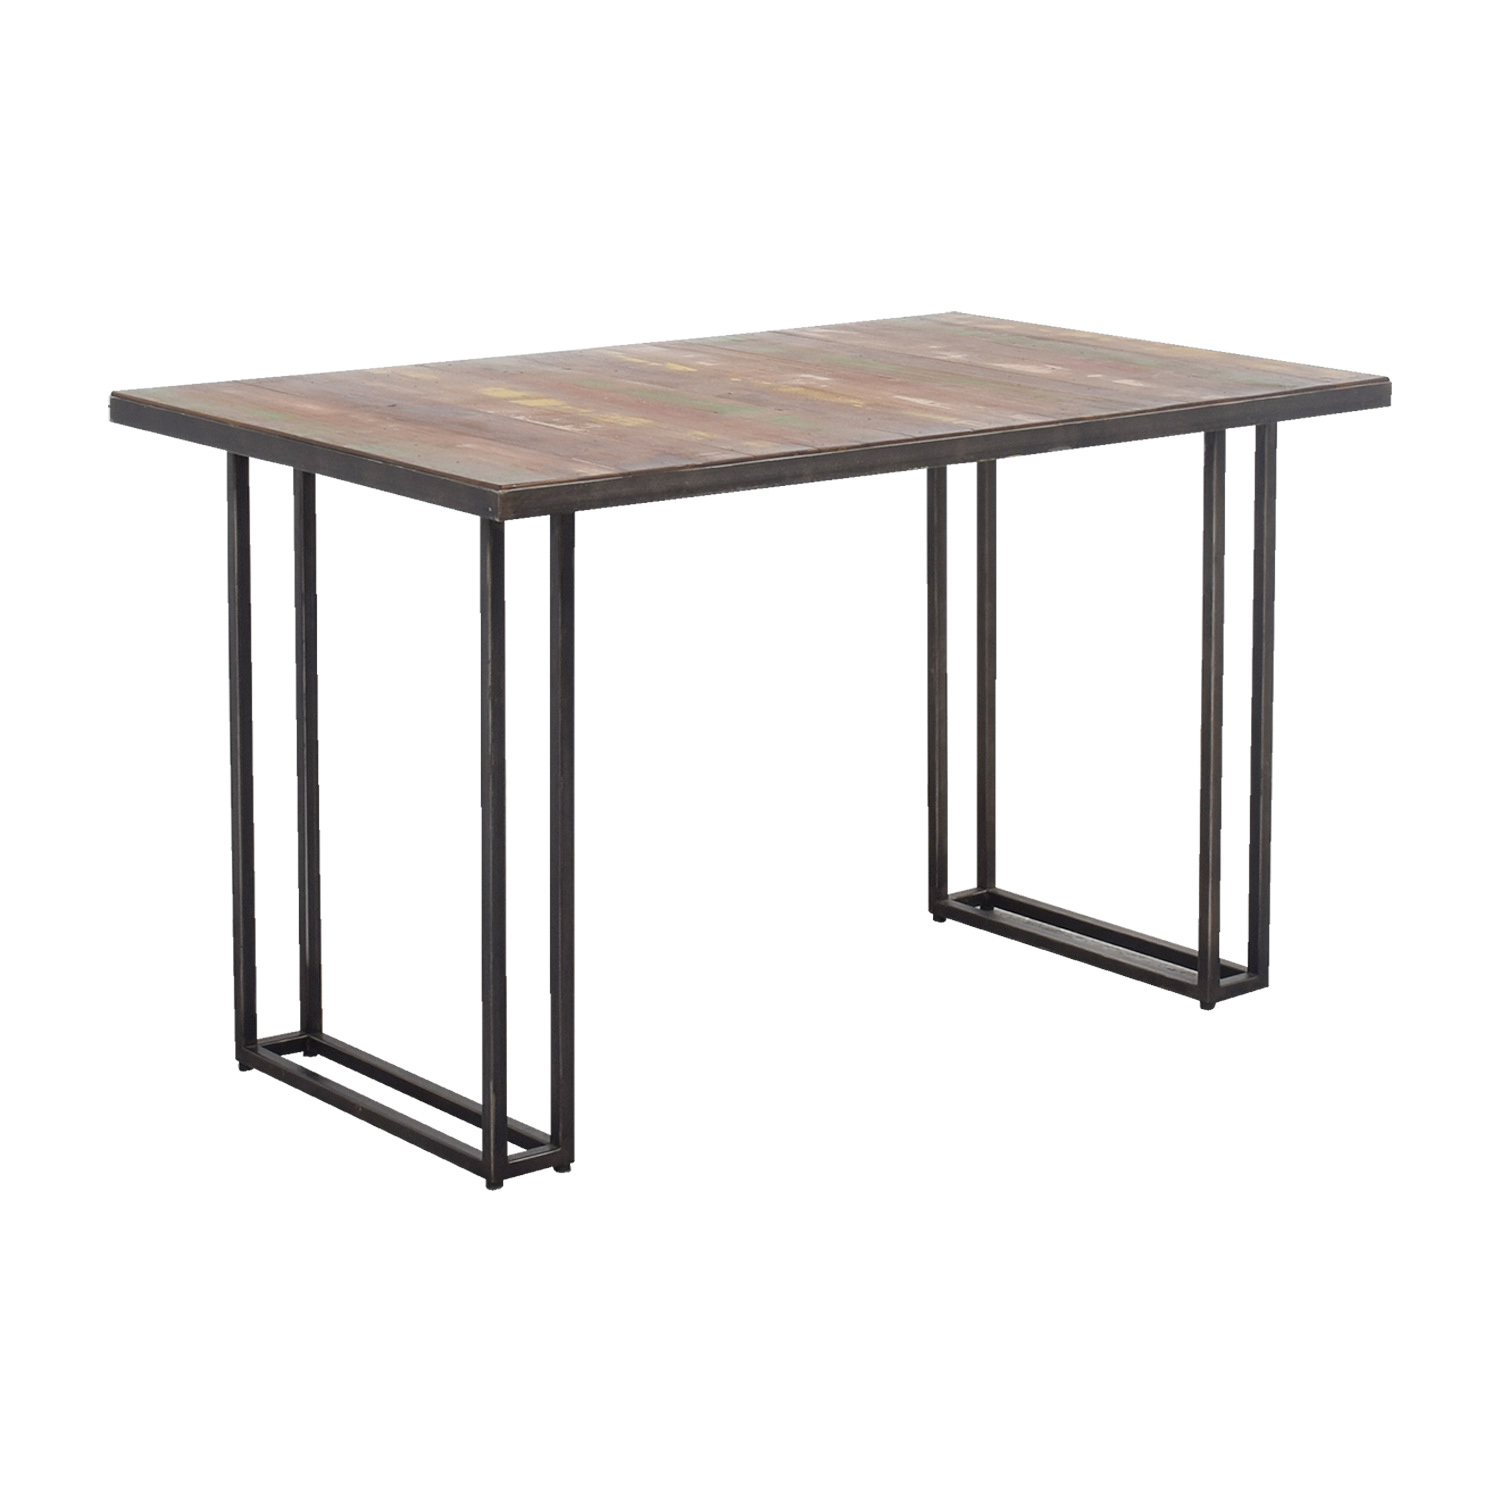 West Elm West Elm Wood & Colored Dining Table price